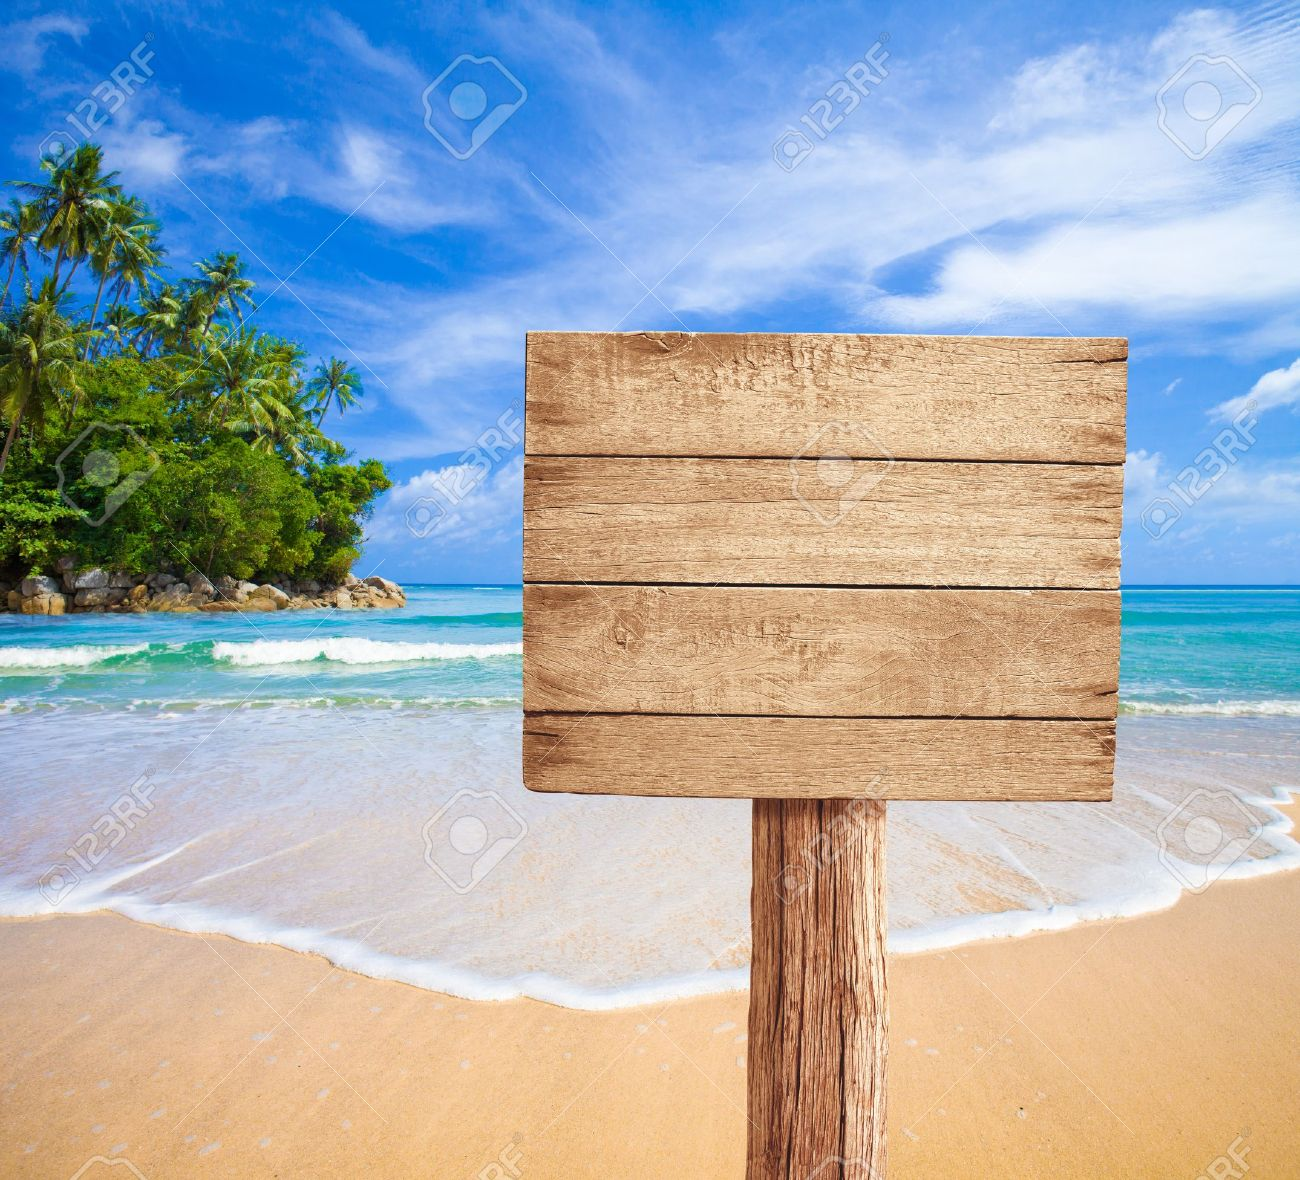 wooden signboard on tropical beach Stock Photo - 15028105